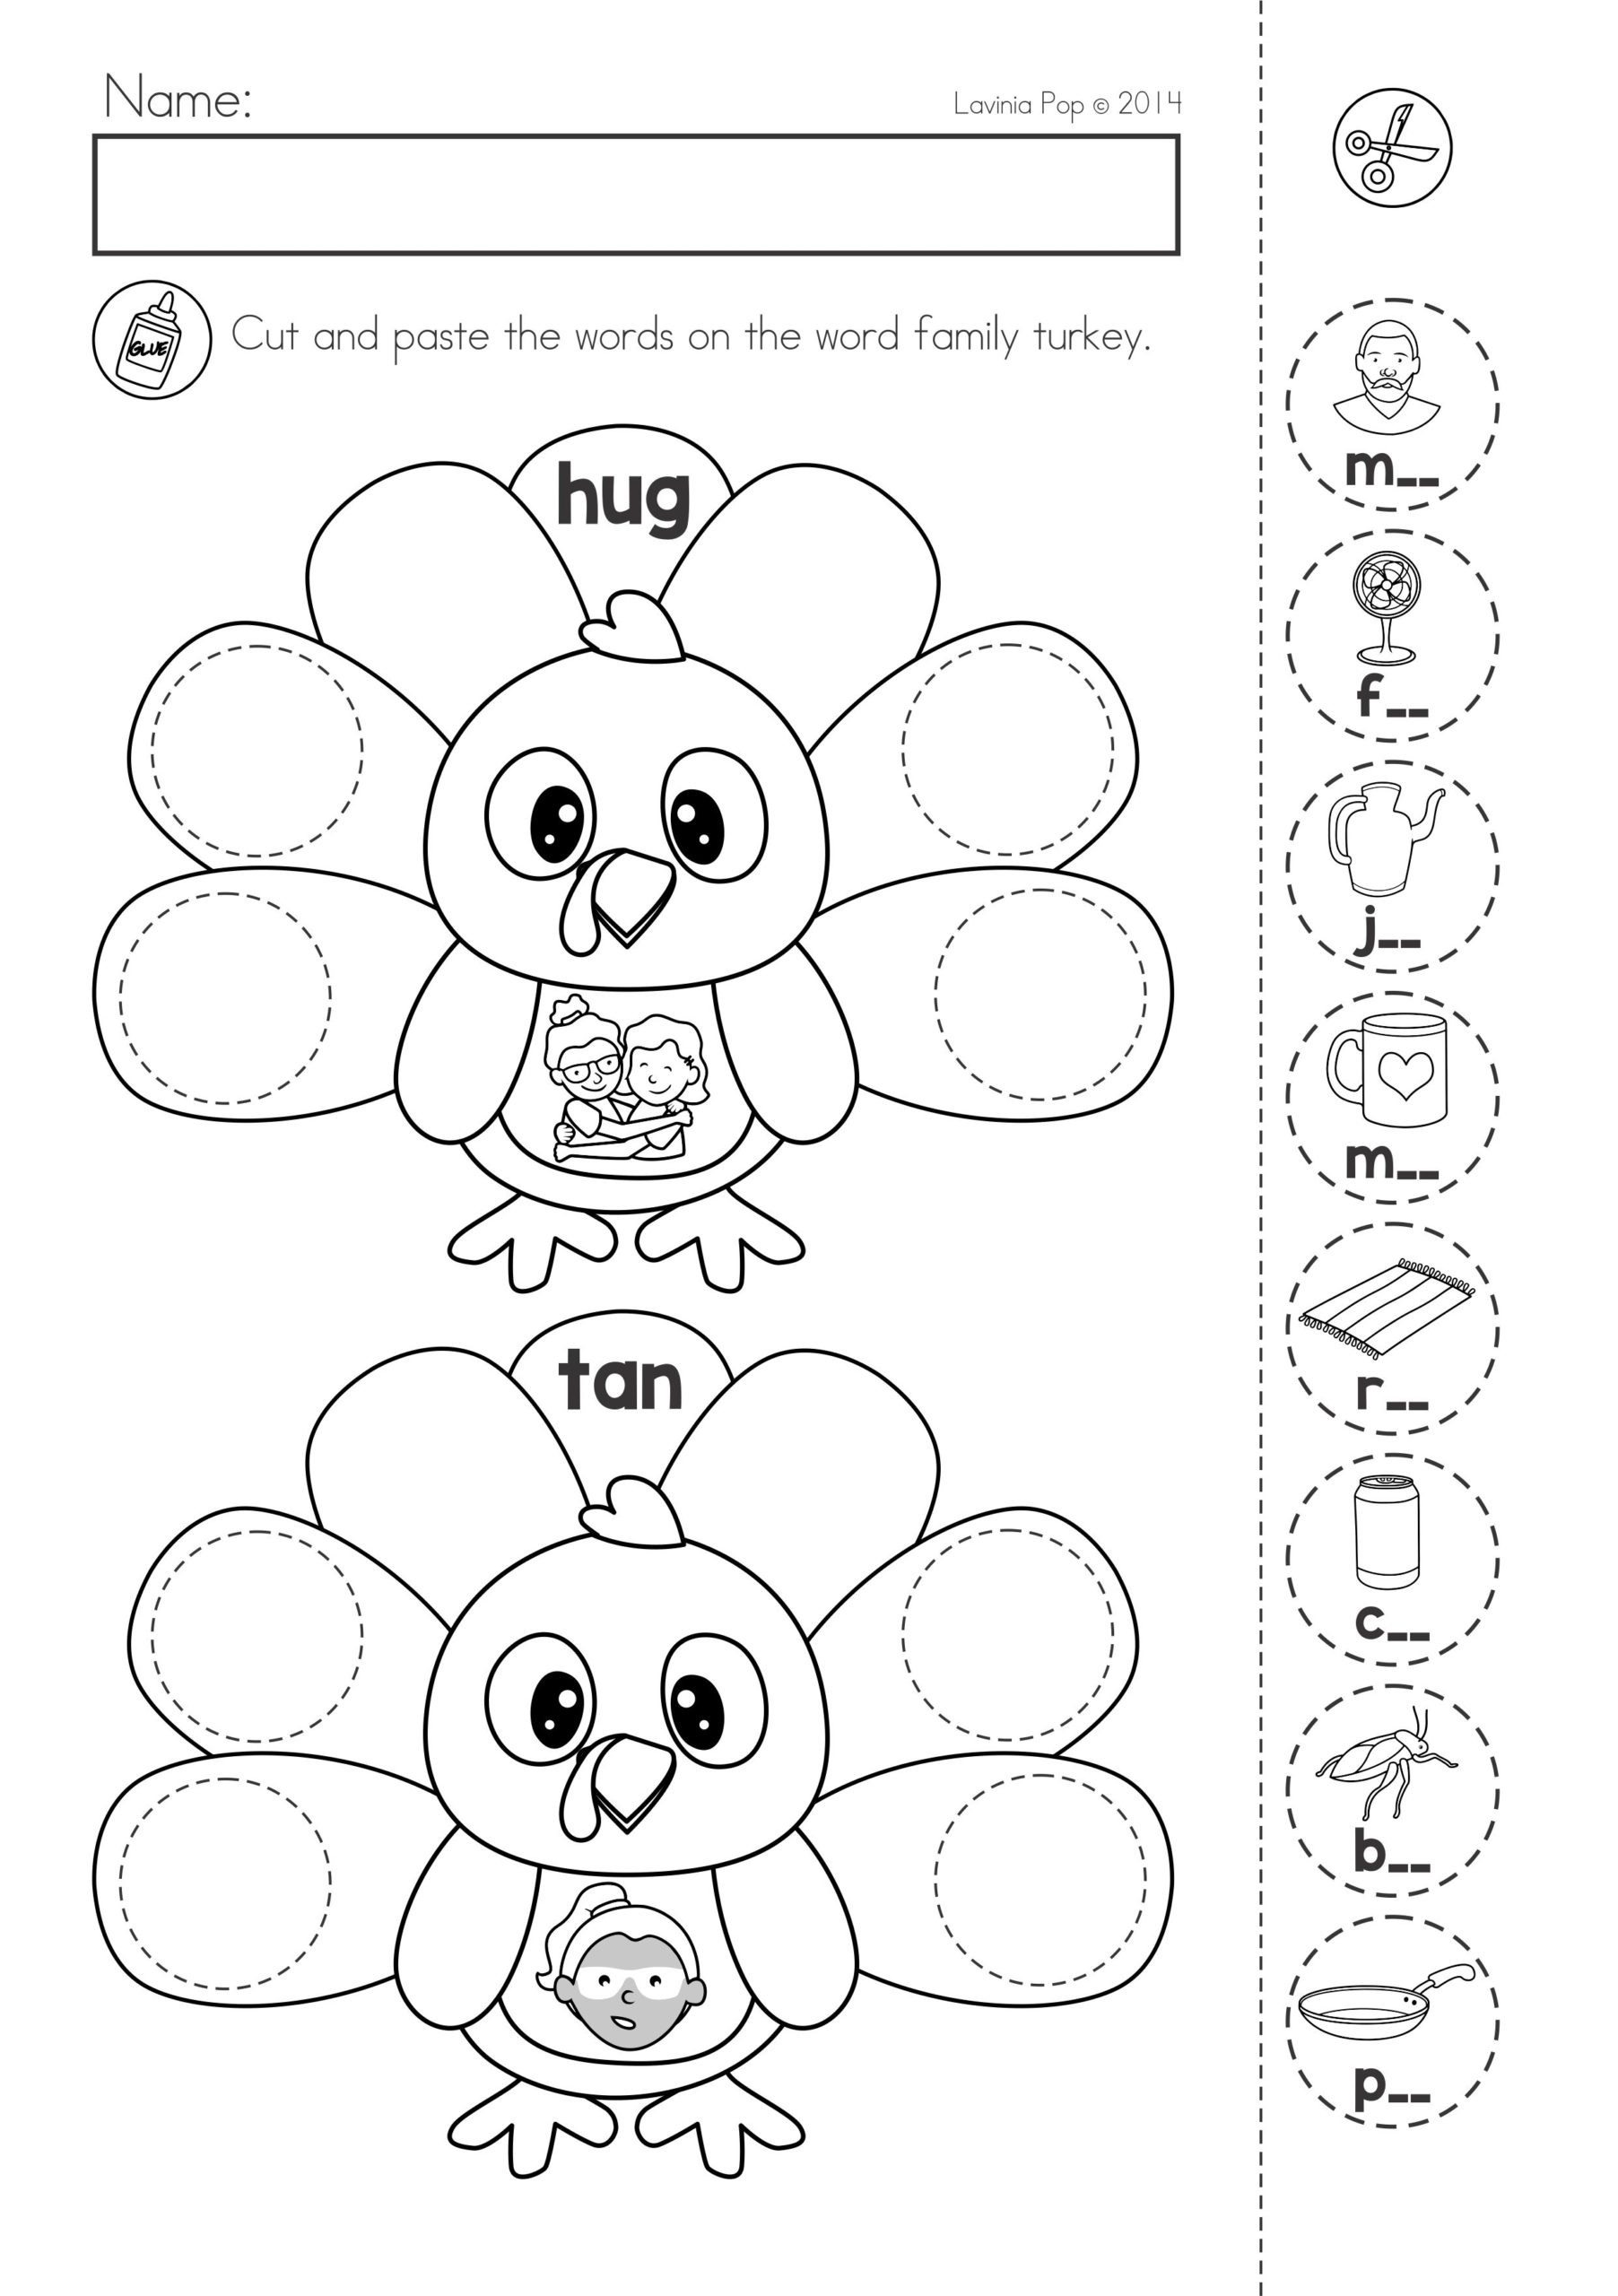 Printable Cut and Paste Worksheets Fraction Worksheet Printable Cut and Paste Worksheets